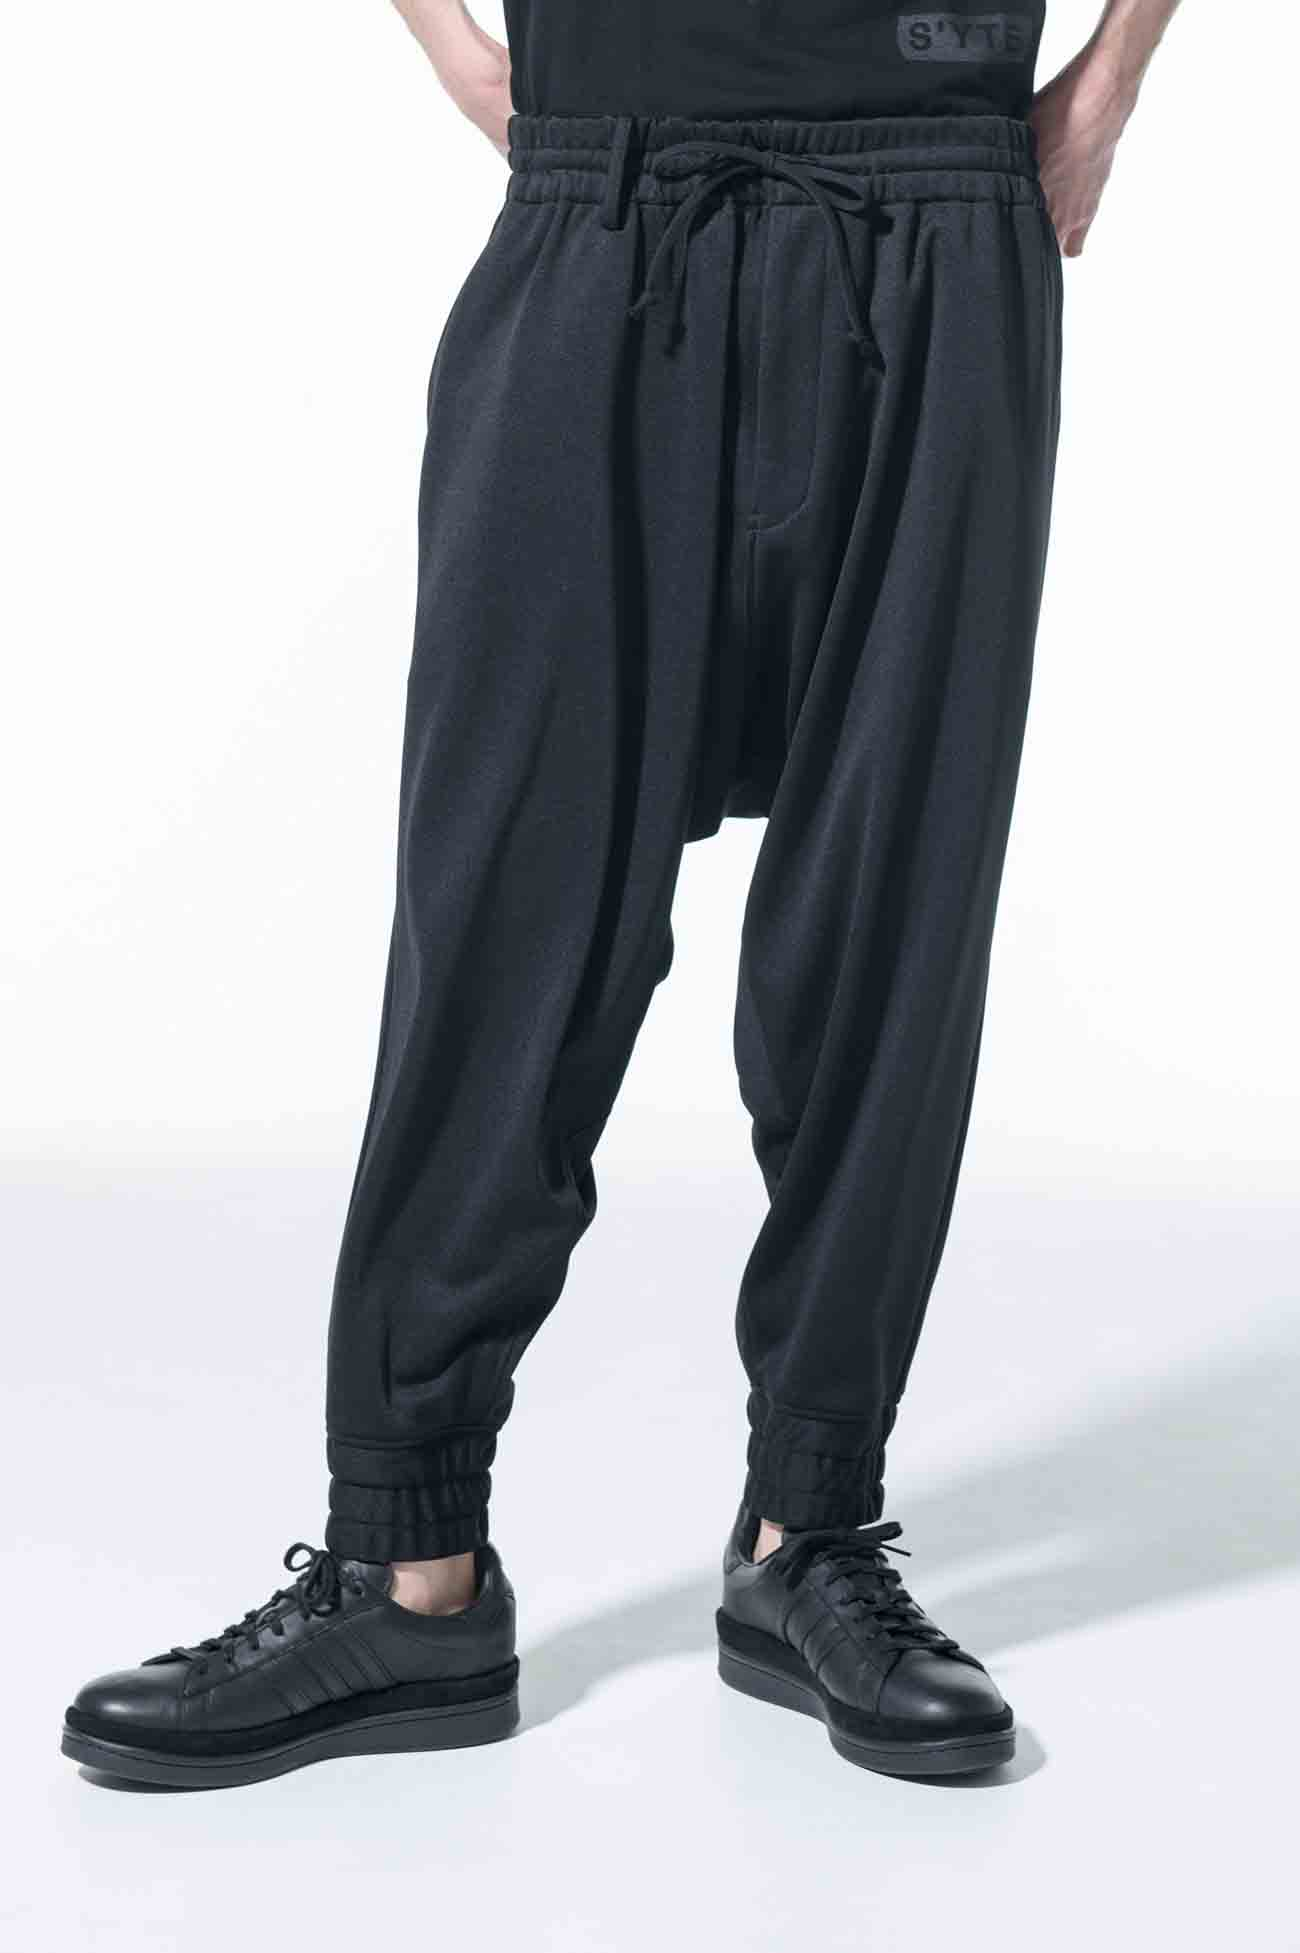 Pe/Smooth Jersey Stitch Work Sarouel Rib New Normal Pants